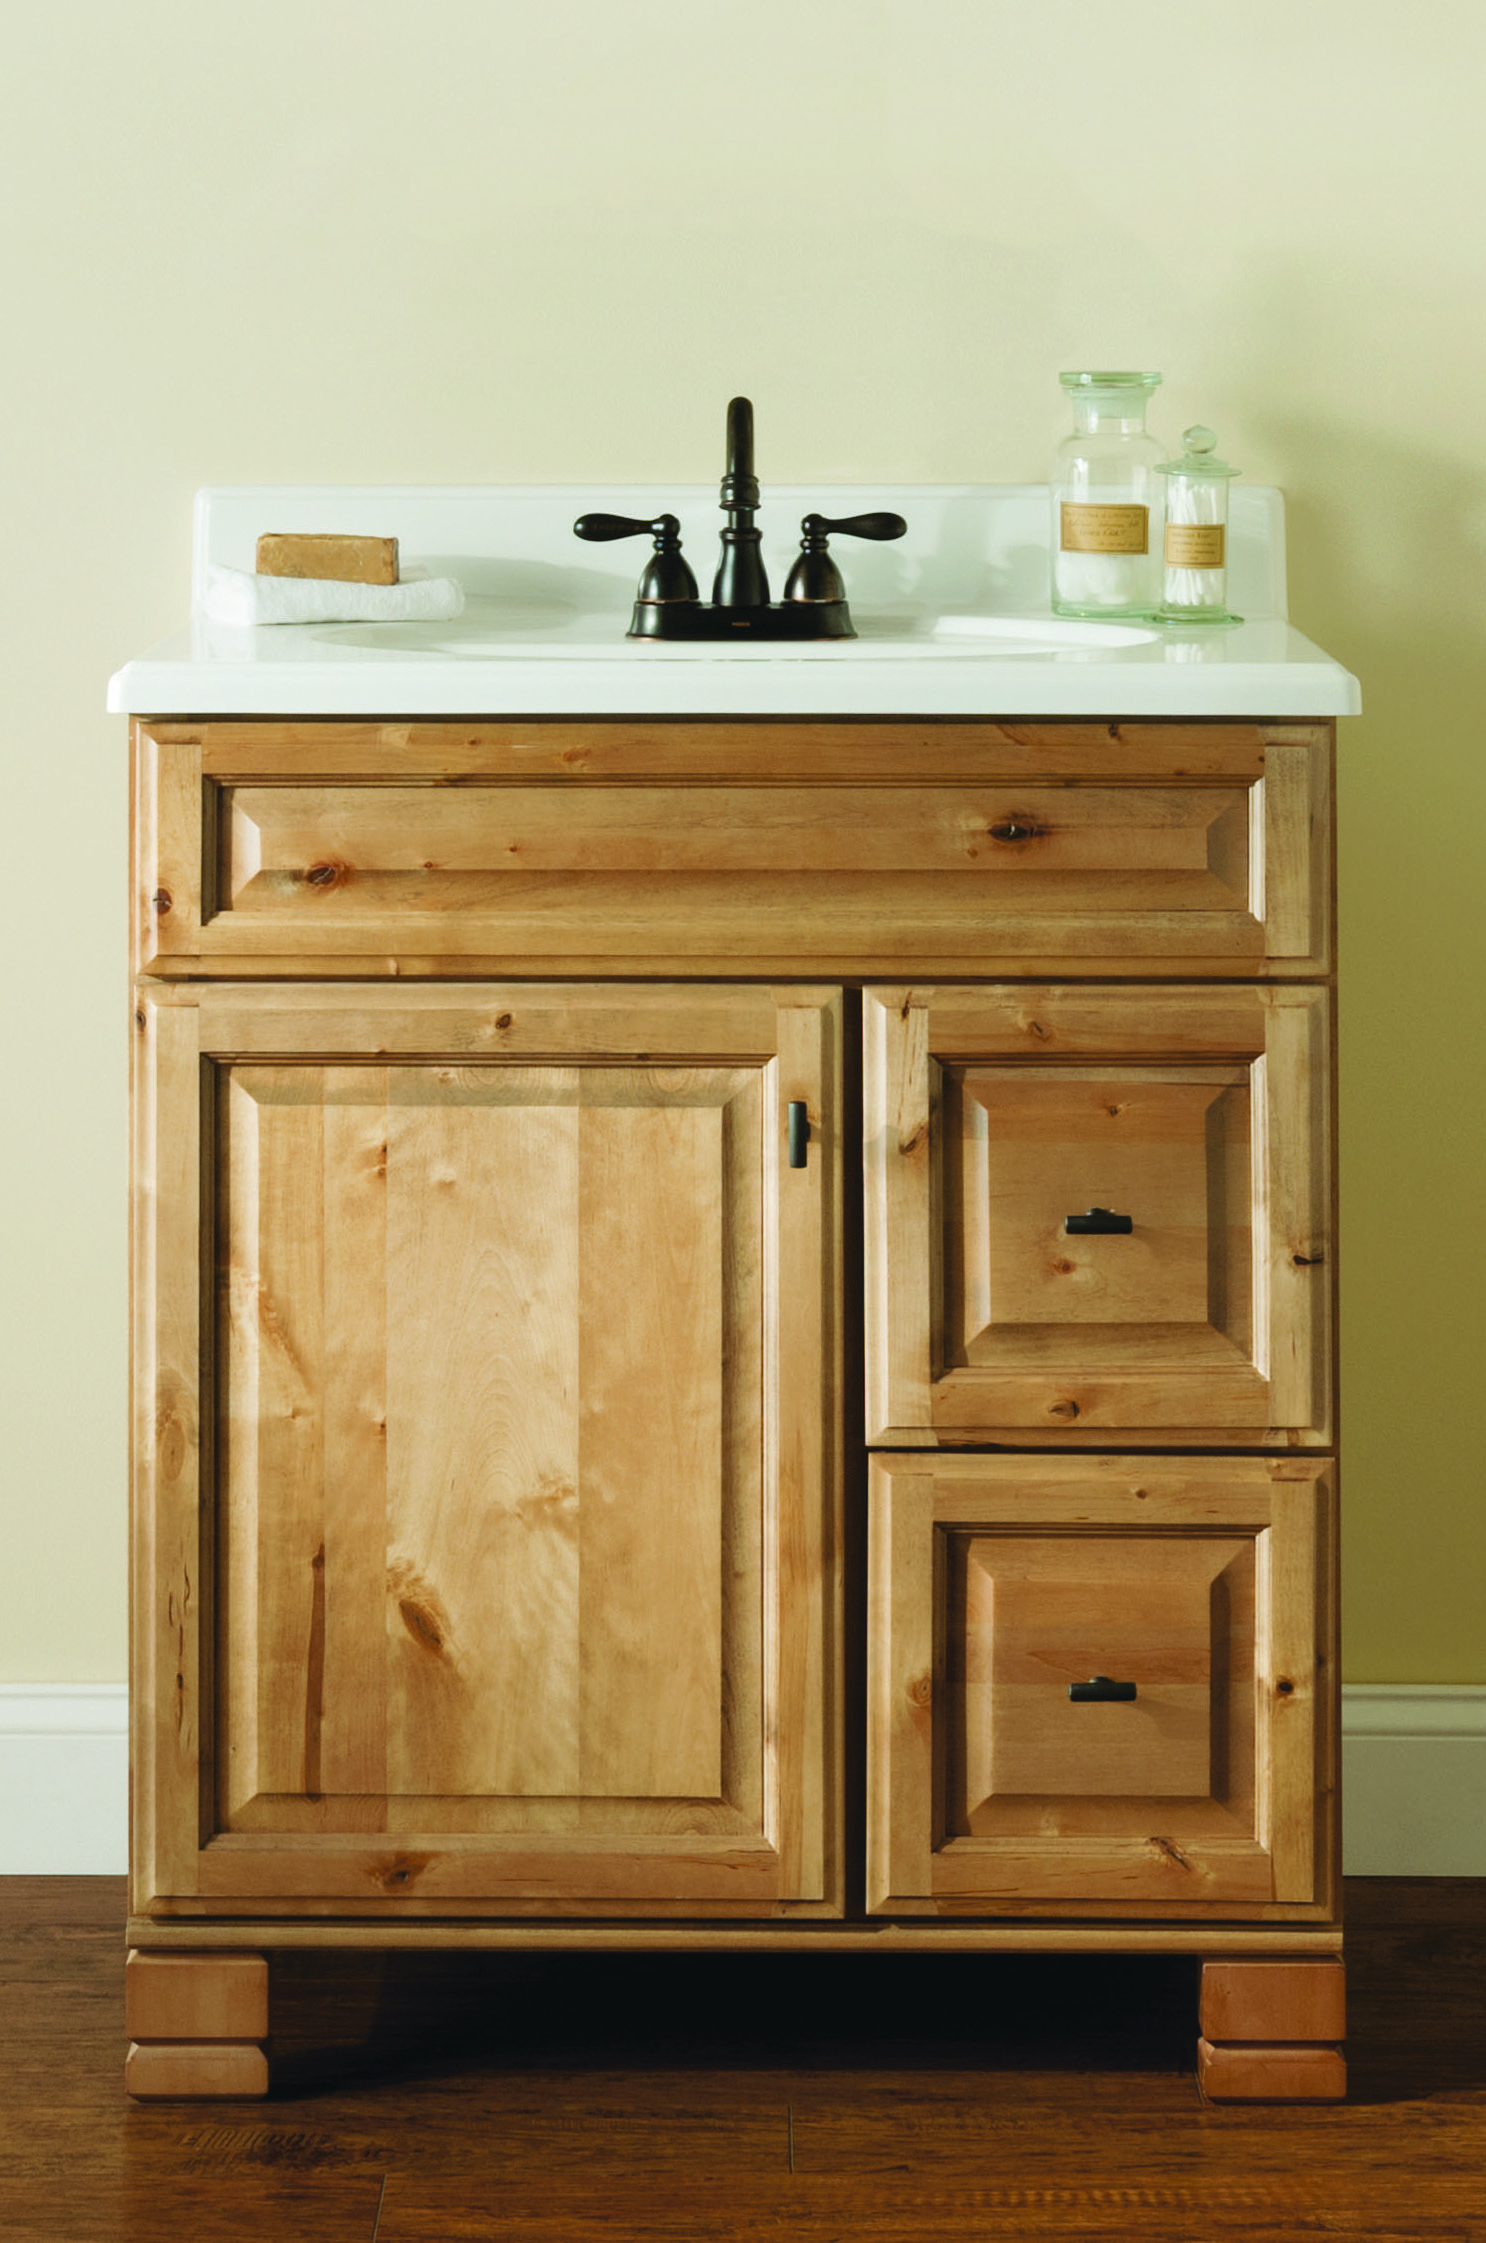 This Tobago Vanity Will Warm Up Your Bathroom With Its Rich Wood Finish.  Made Of Rustic Birch, This X Vanity Features Soft Closing Doors And  Full Extension ...